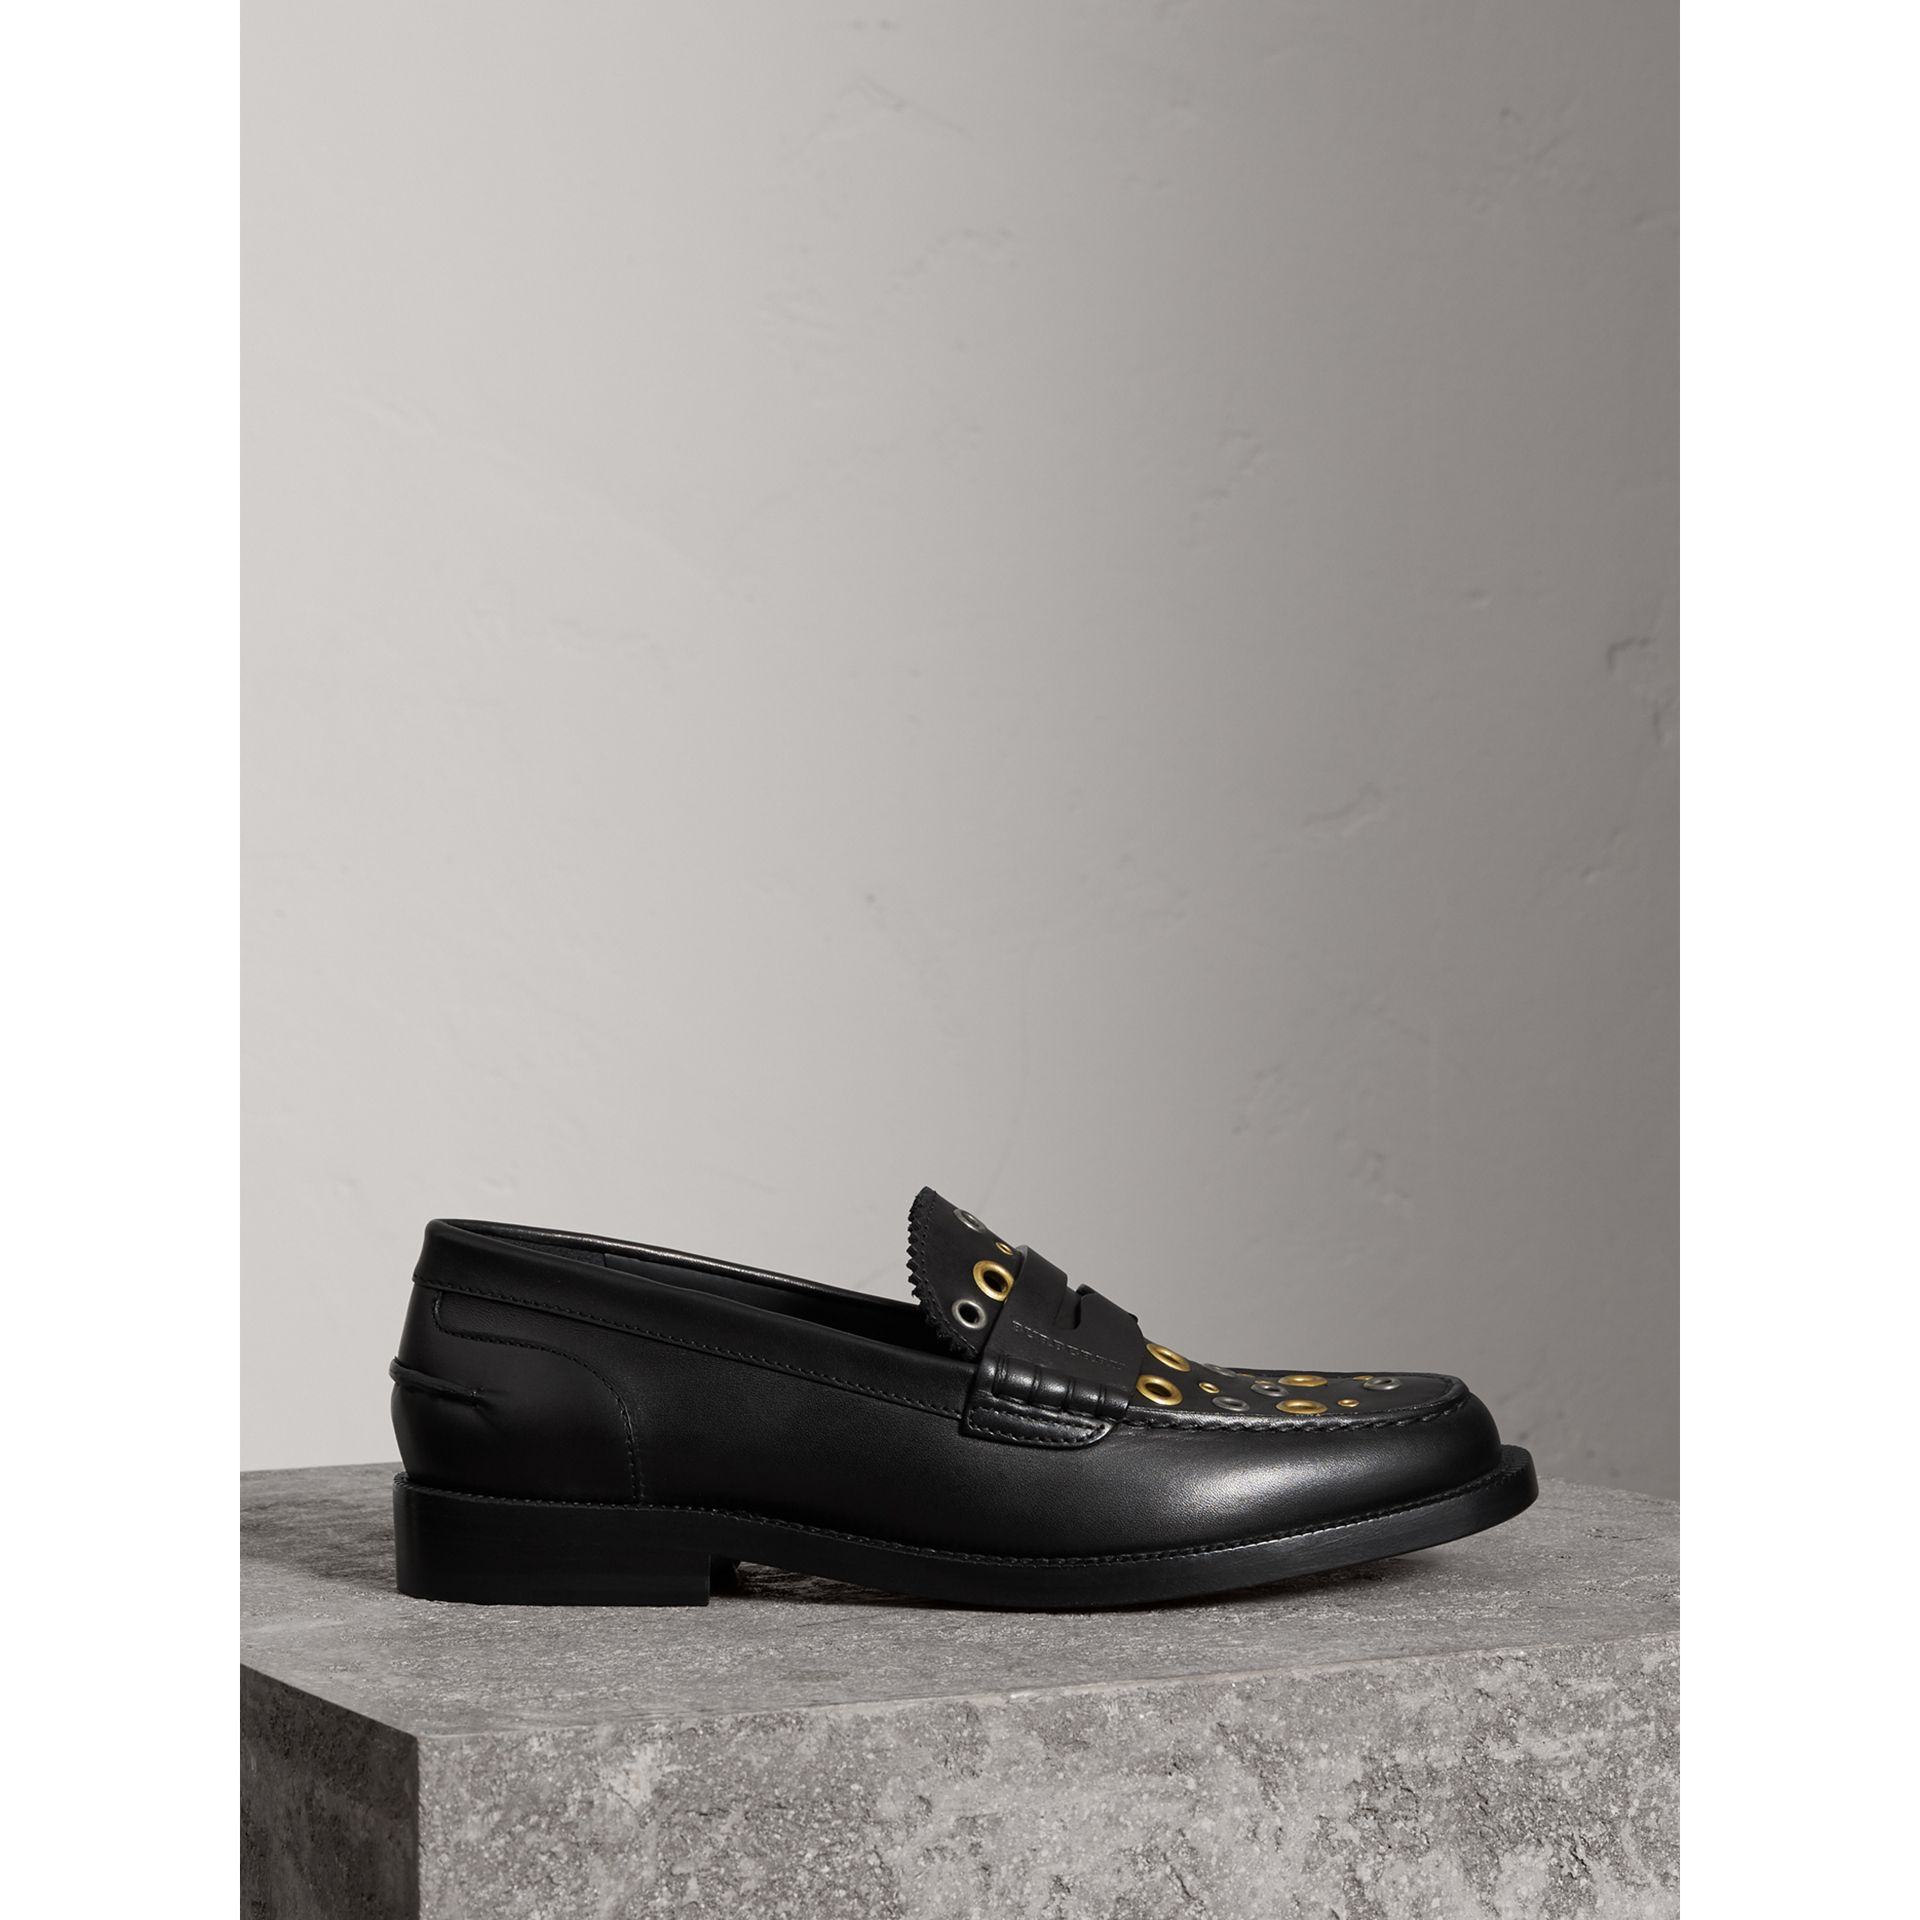 Eyelet Detail Leather Penny Loafers in Black - Women | Burberry - gallery image 4